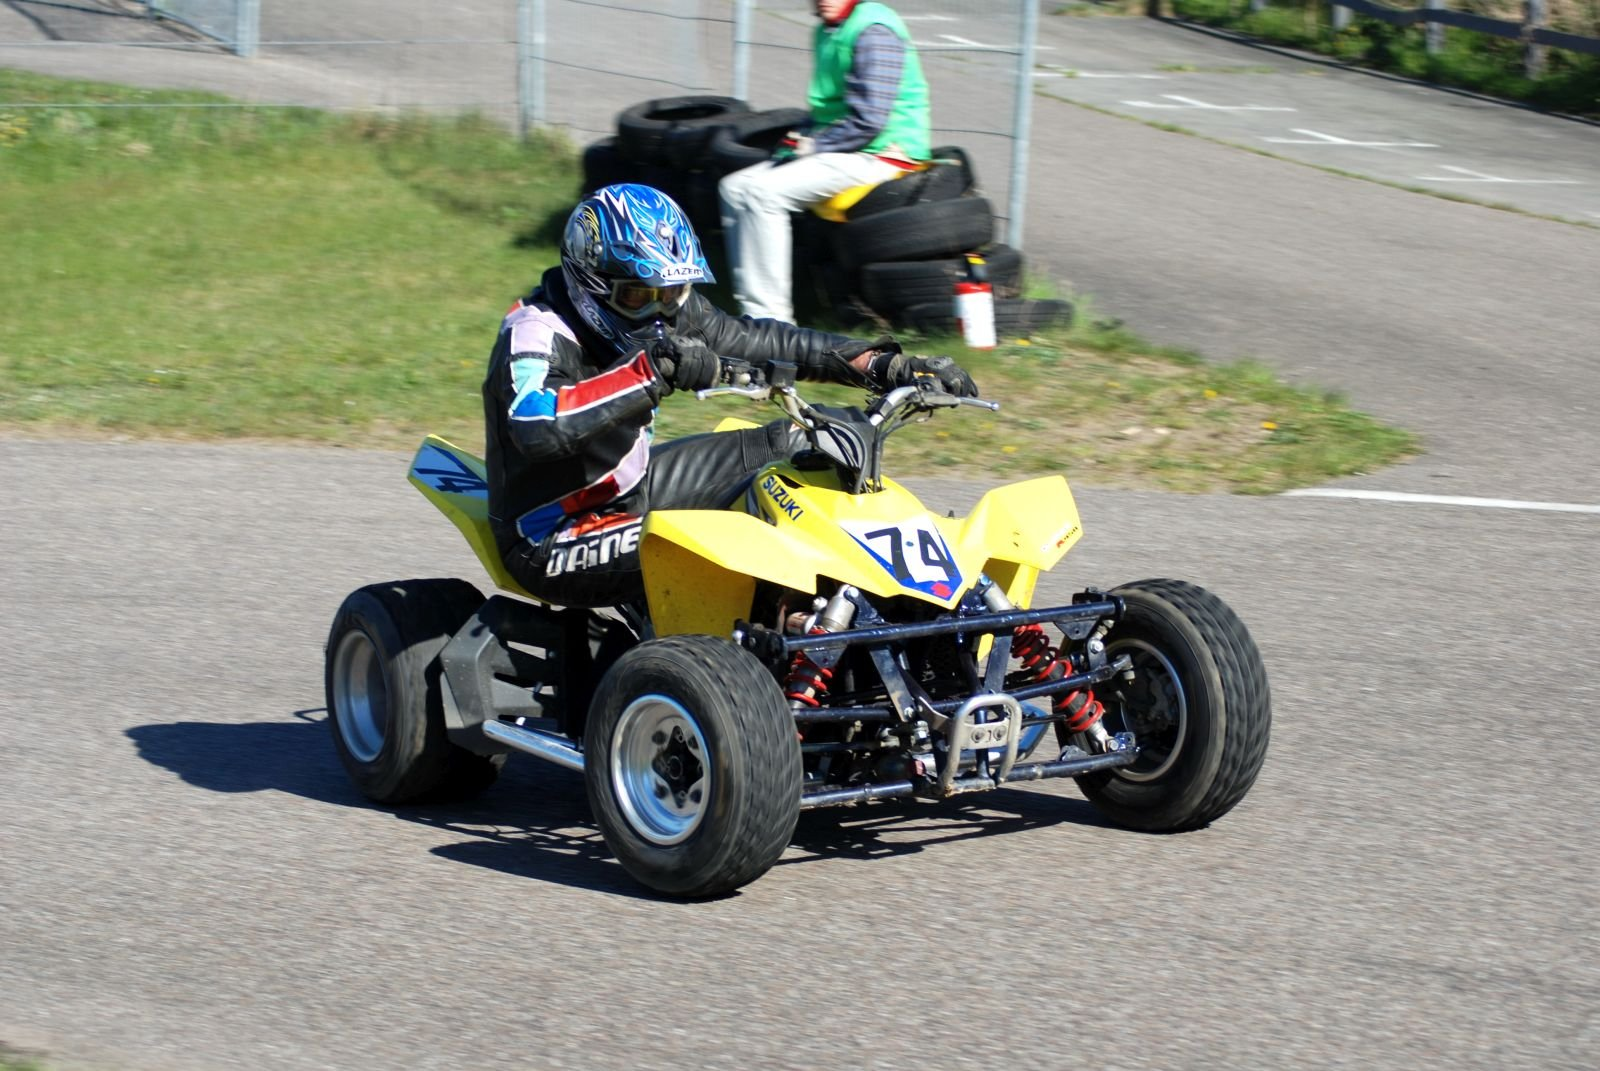 Supermotard_DM_ALS_2009 (20)